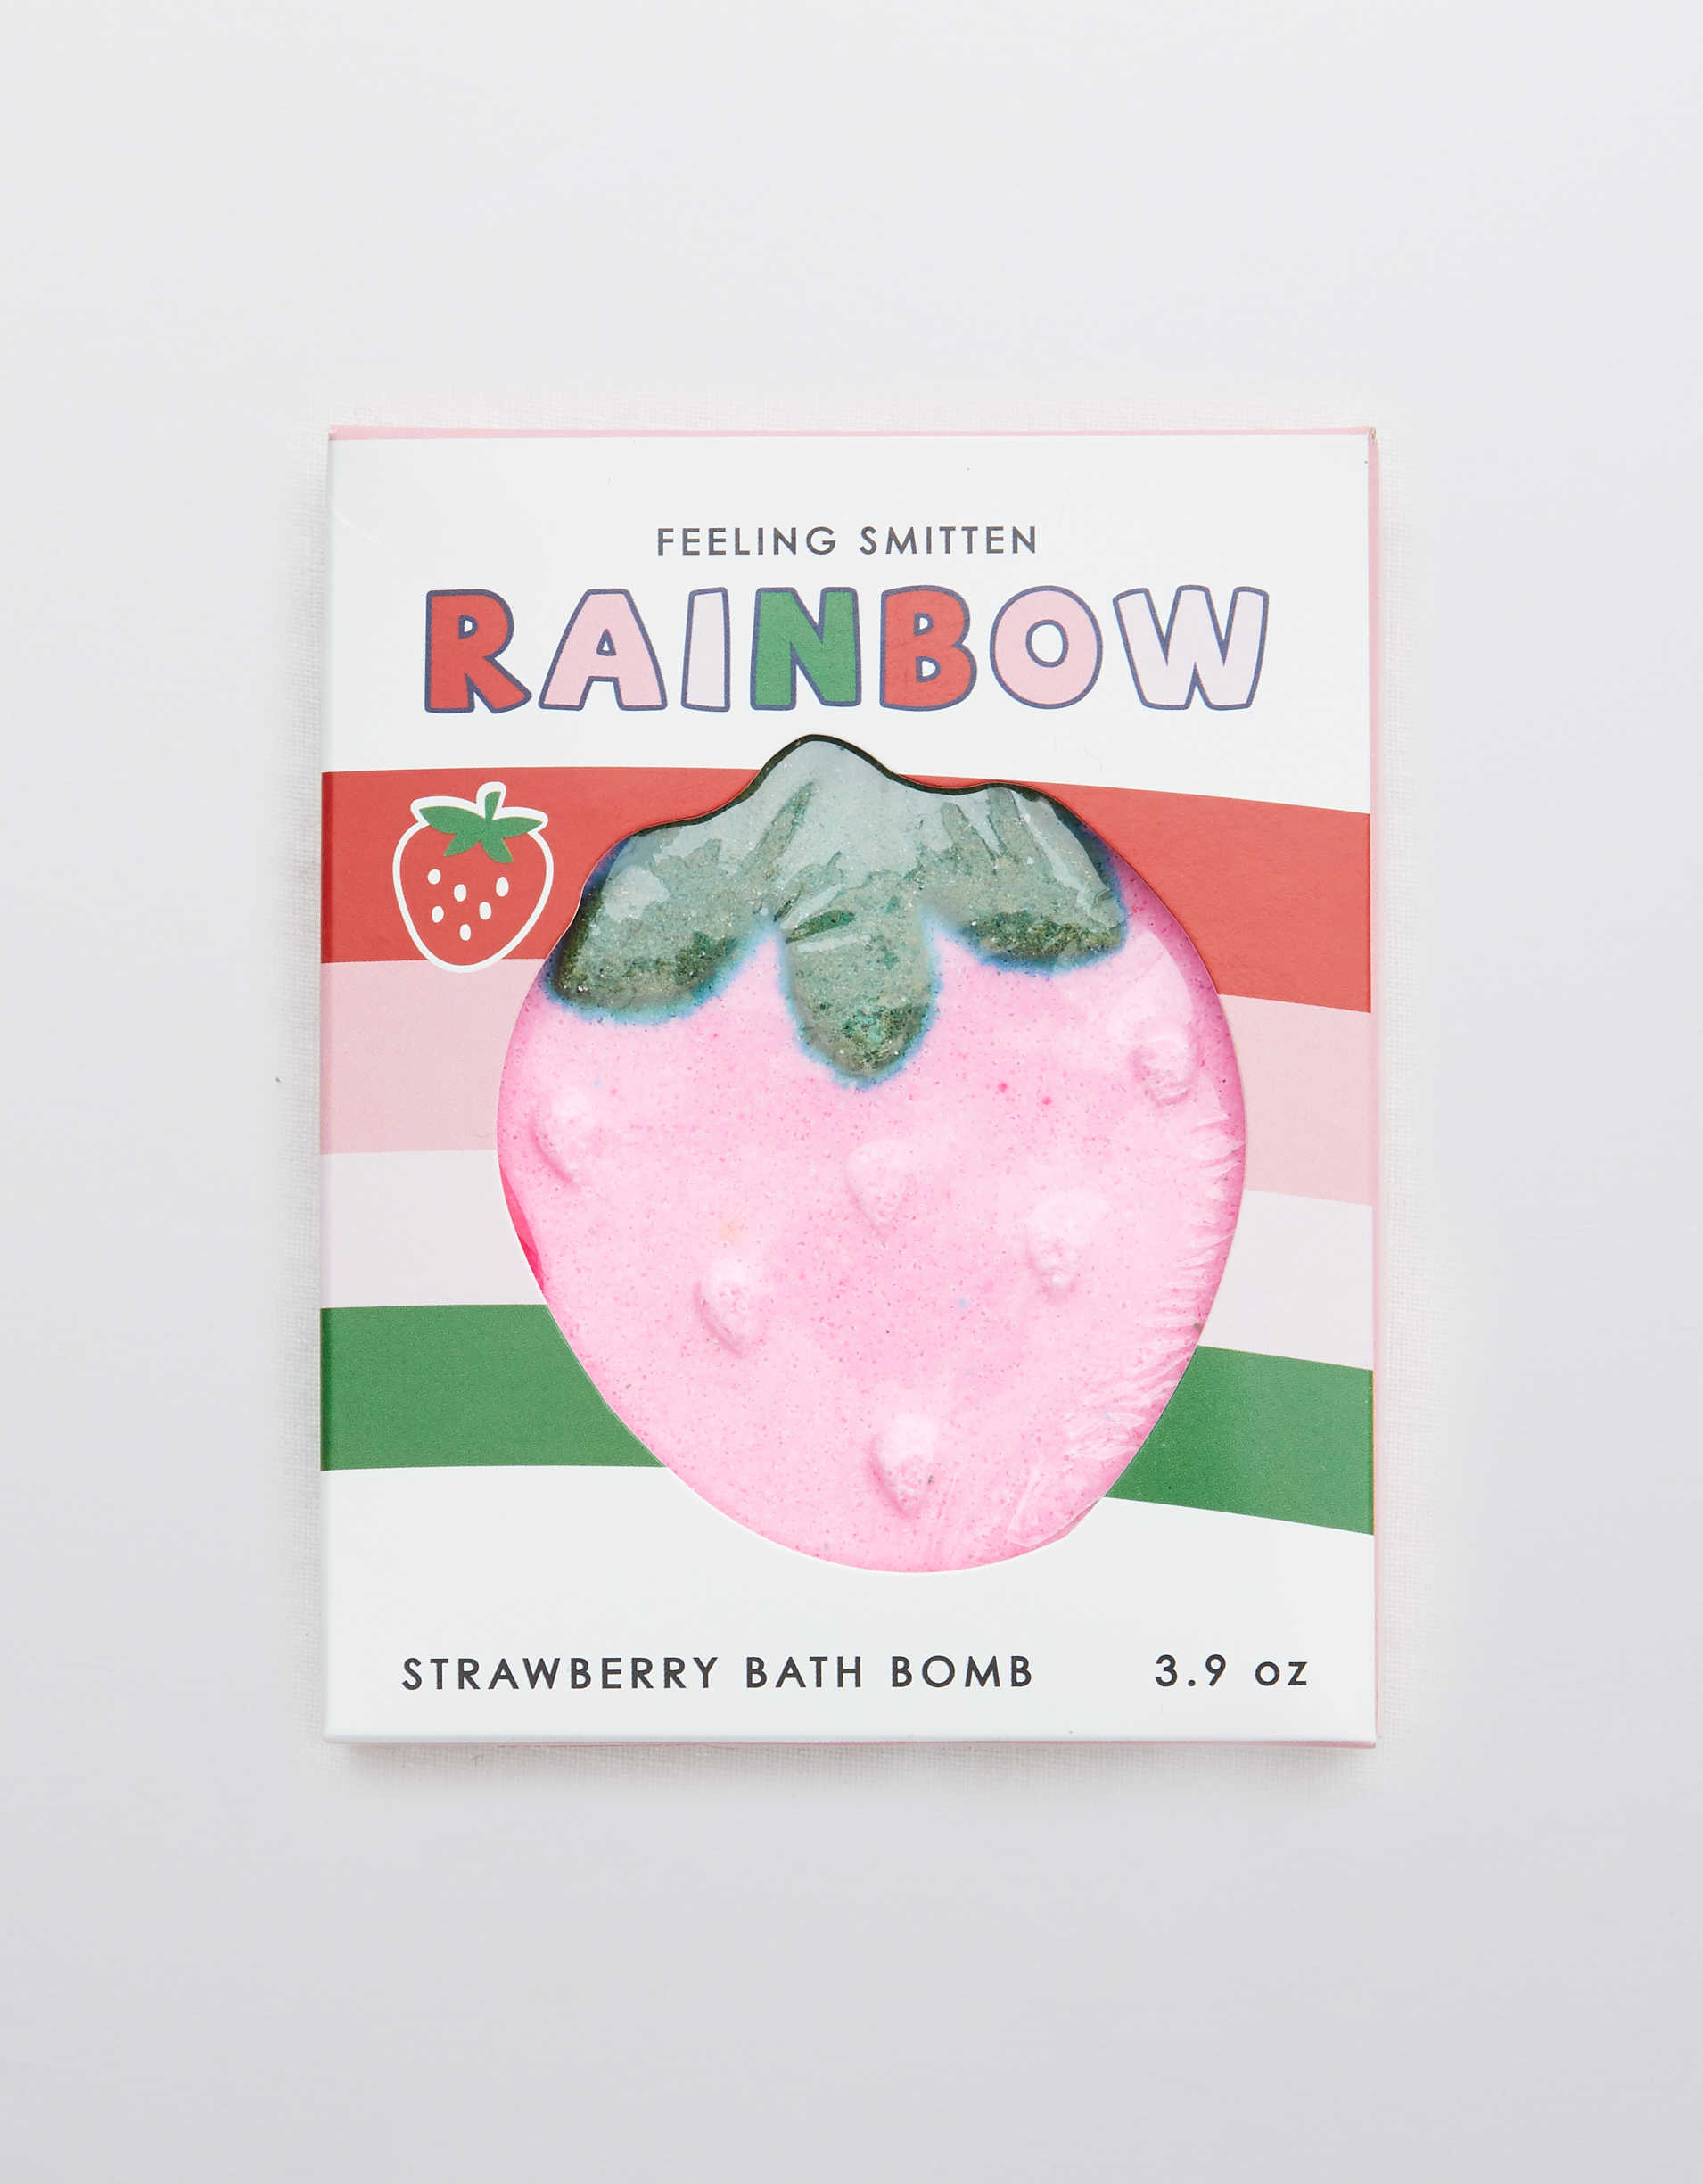 Feeling Smitten Strawberry Bath Bomb